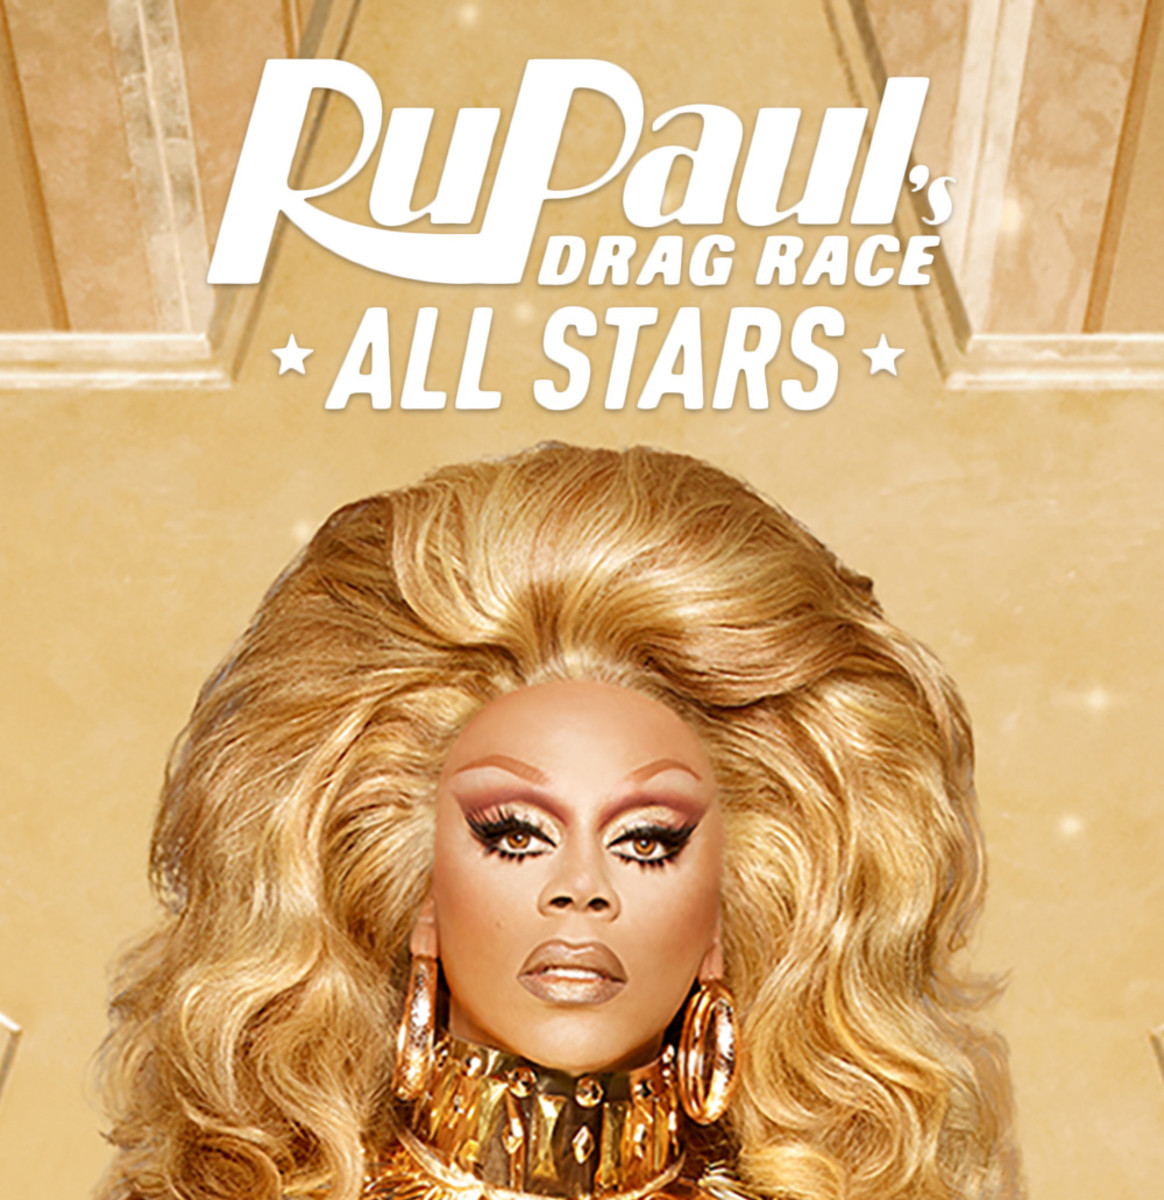 10 Fierce Queens That We Need to See on 'RuPaul's Drag Race All Stars'!